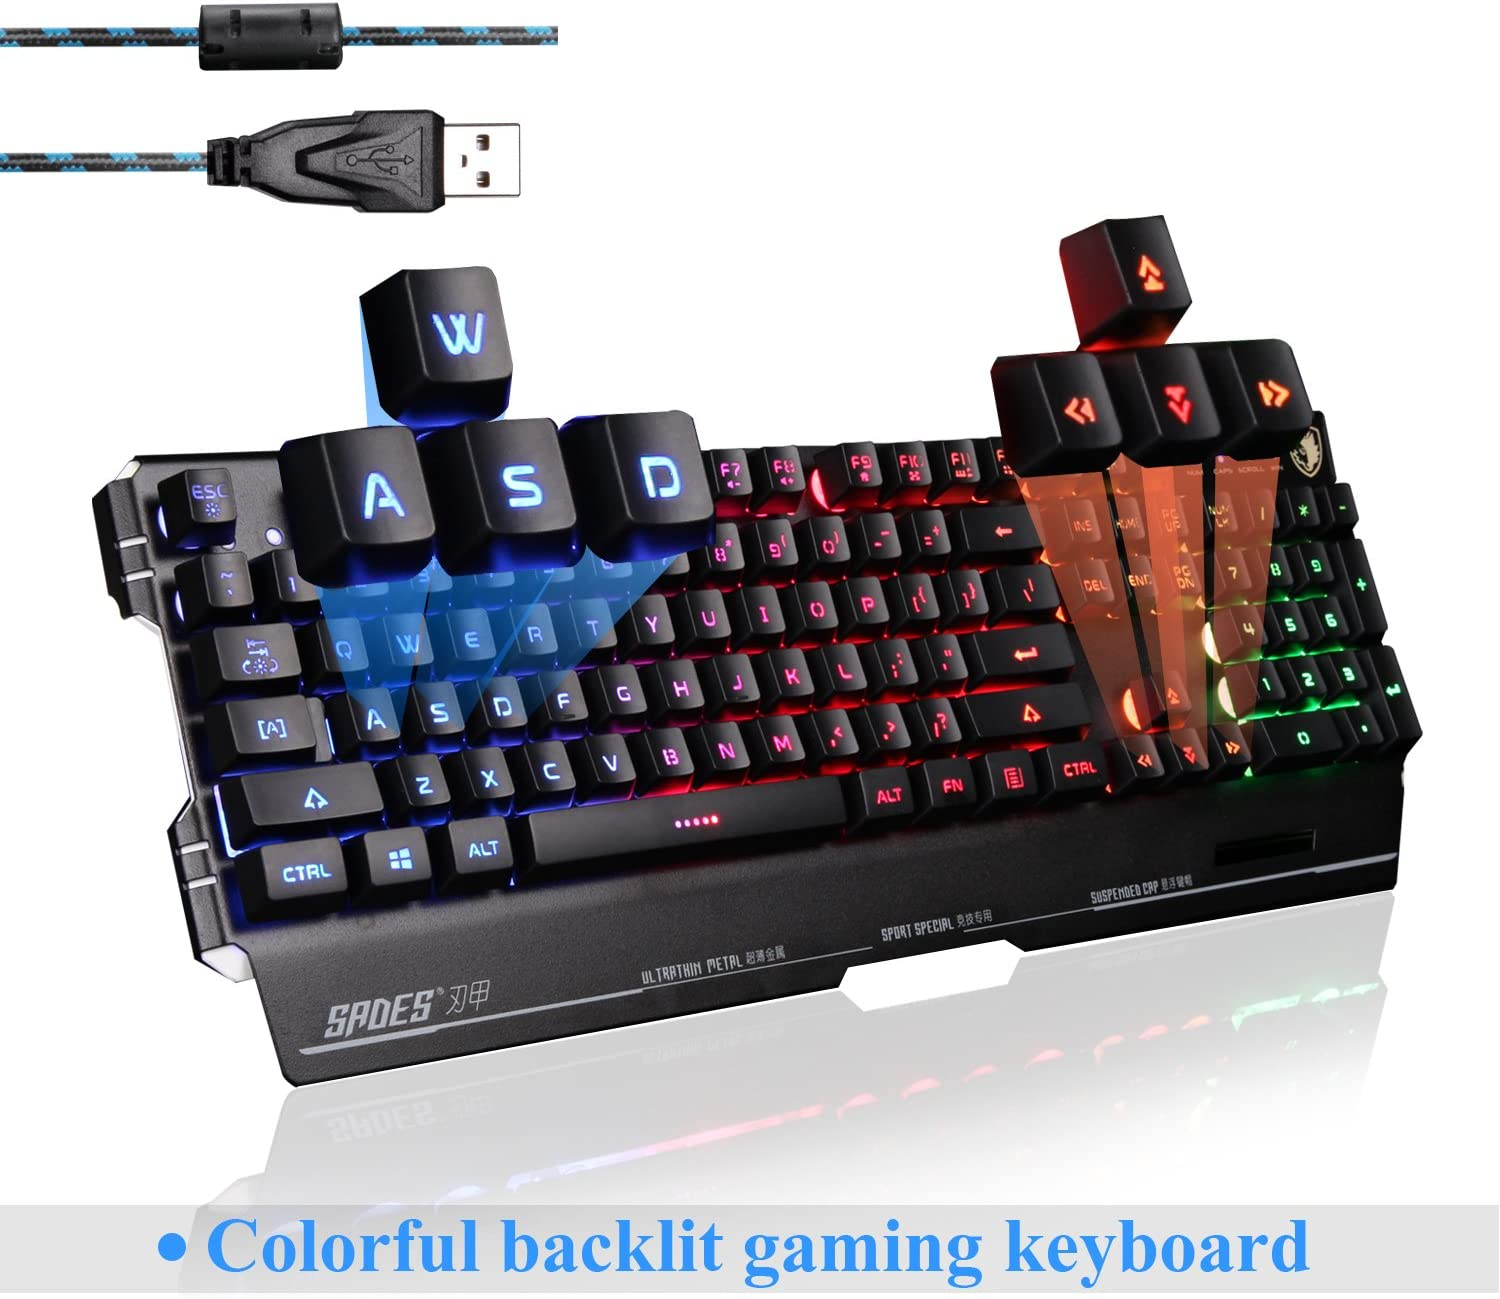 SADES Blademail K8 Wired Gaming Keyboard for Pro PC Gamers, 19 Non-Conflict Keys, Metal Base, Colorful Blacklight Black